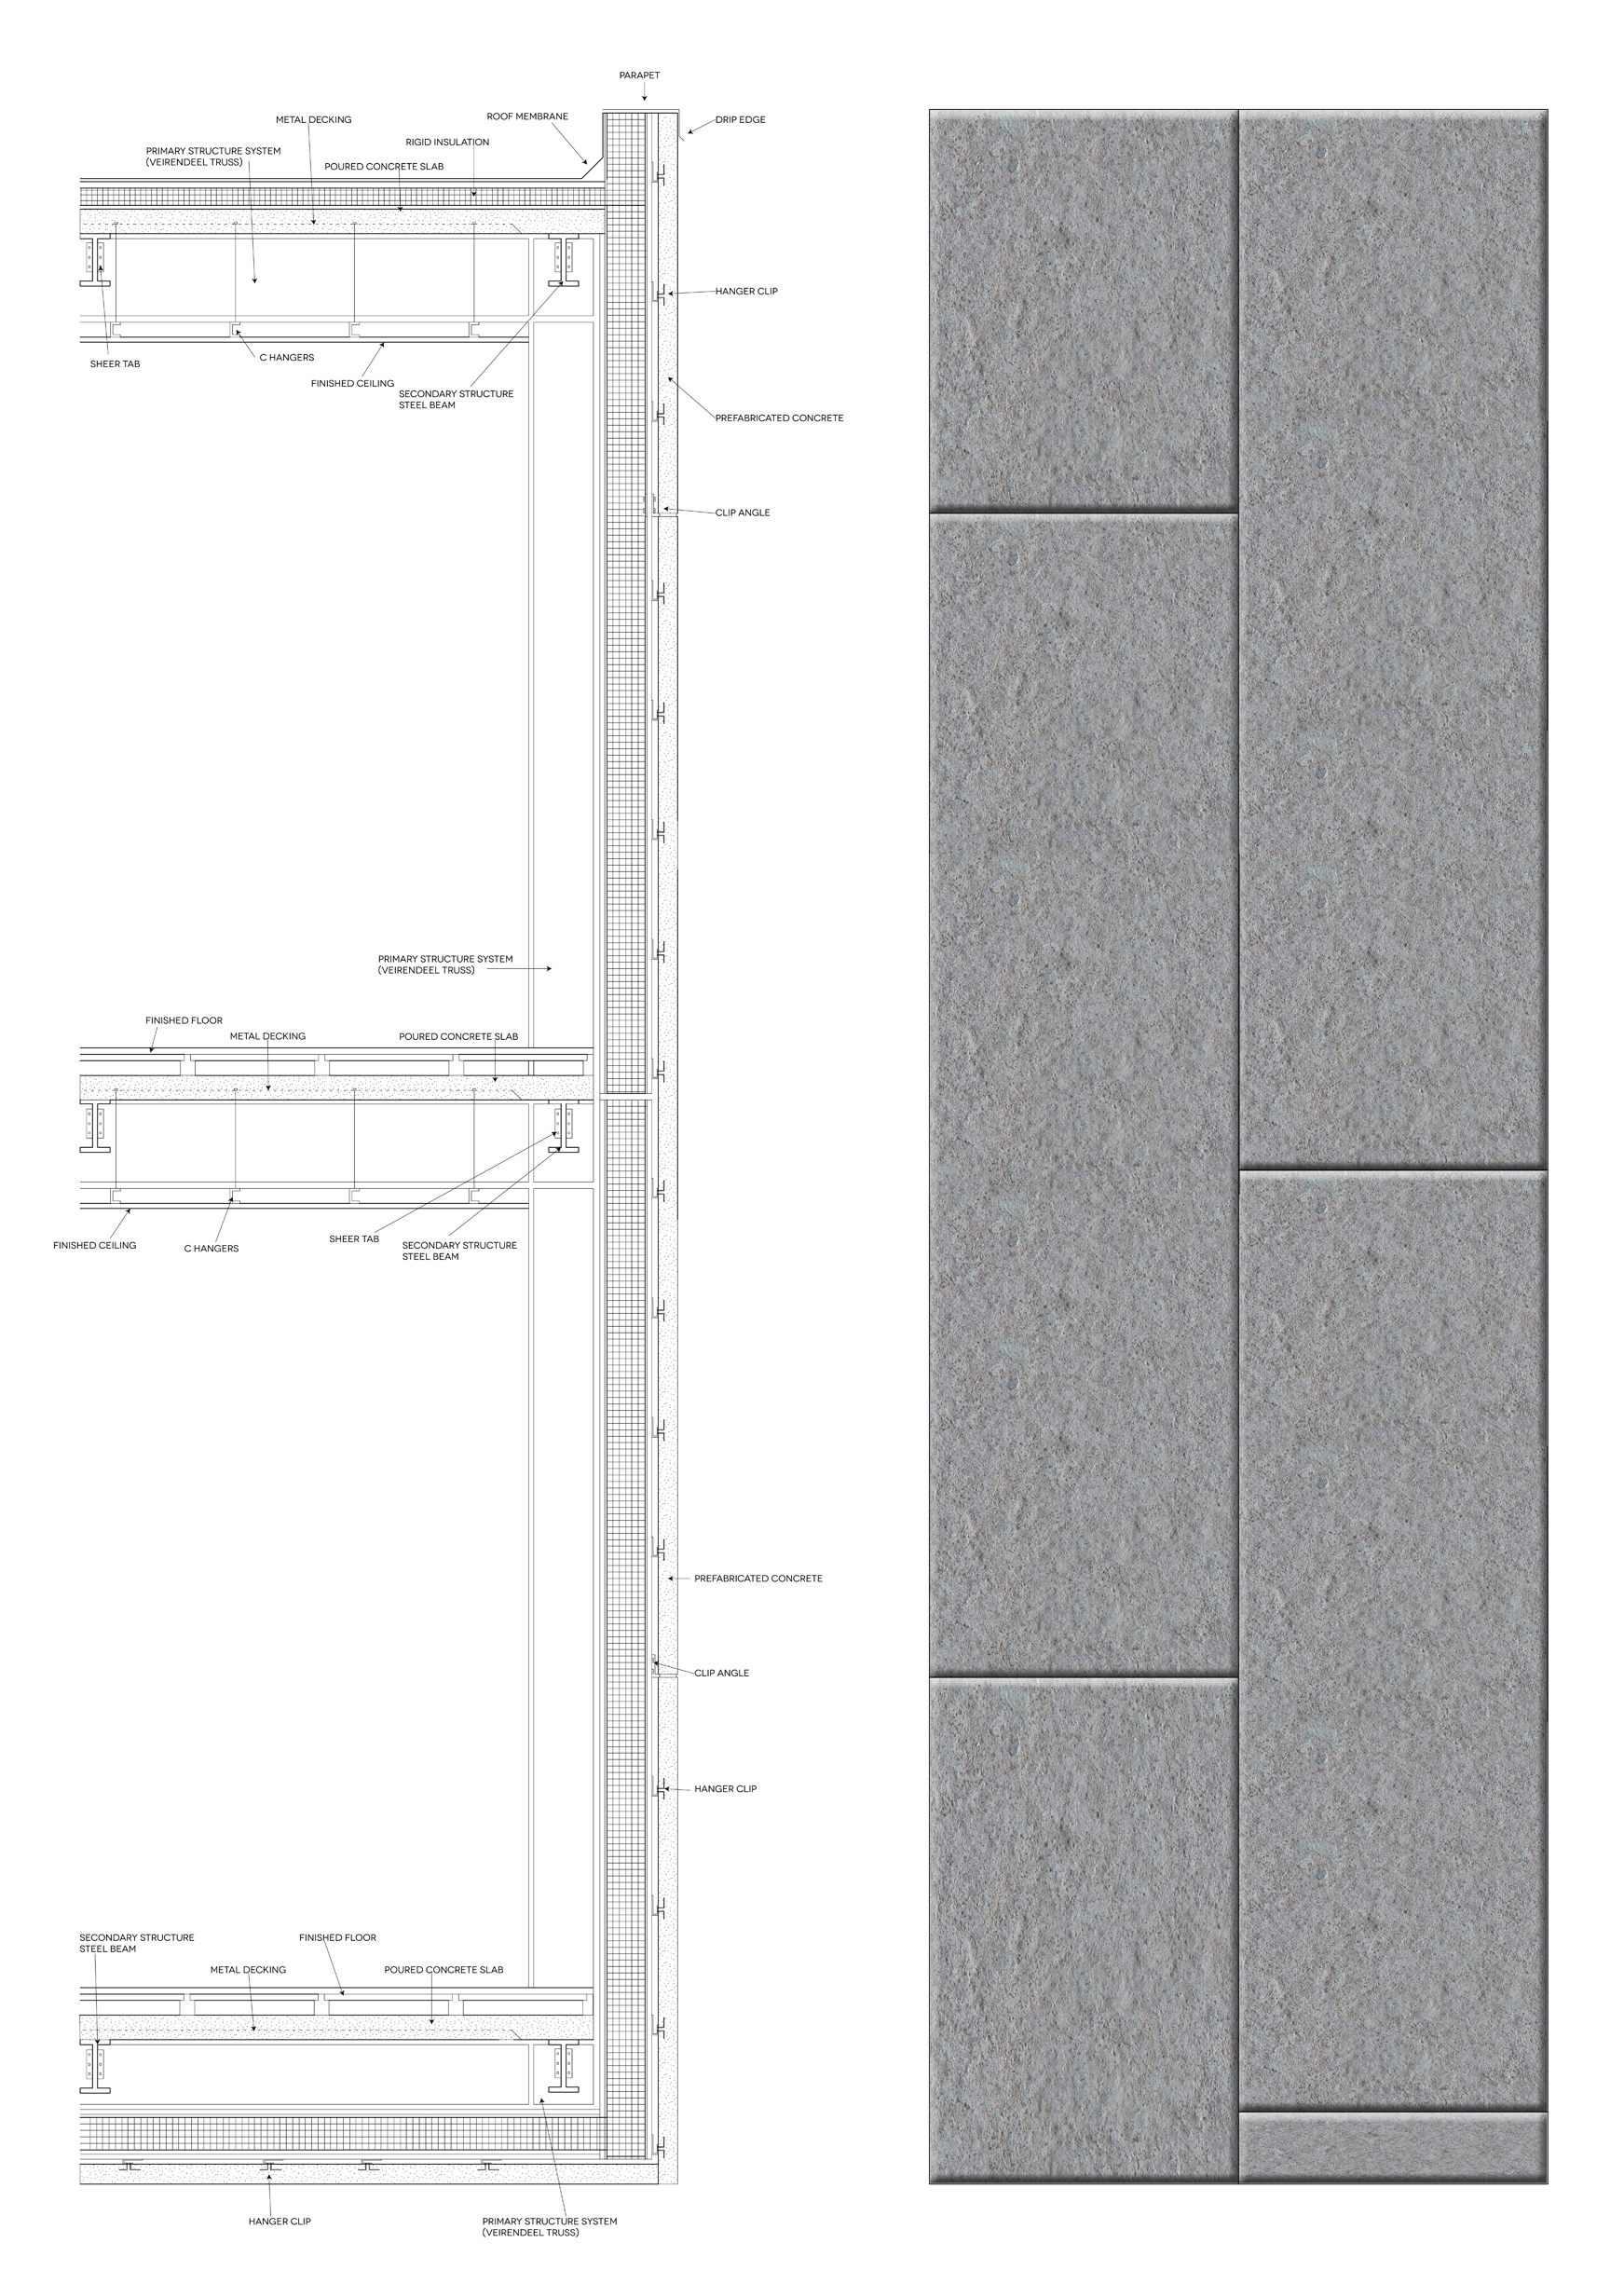 Concrete Panel Wall Section Detail